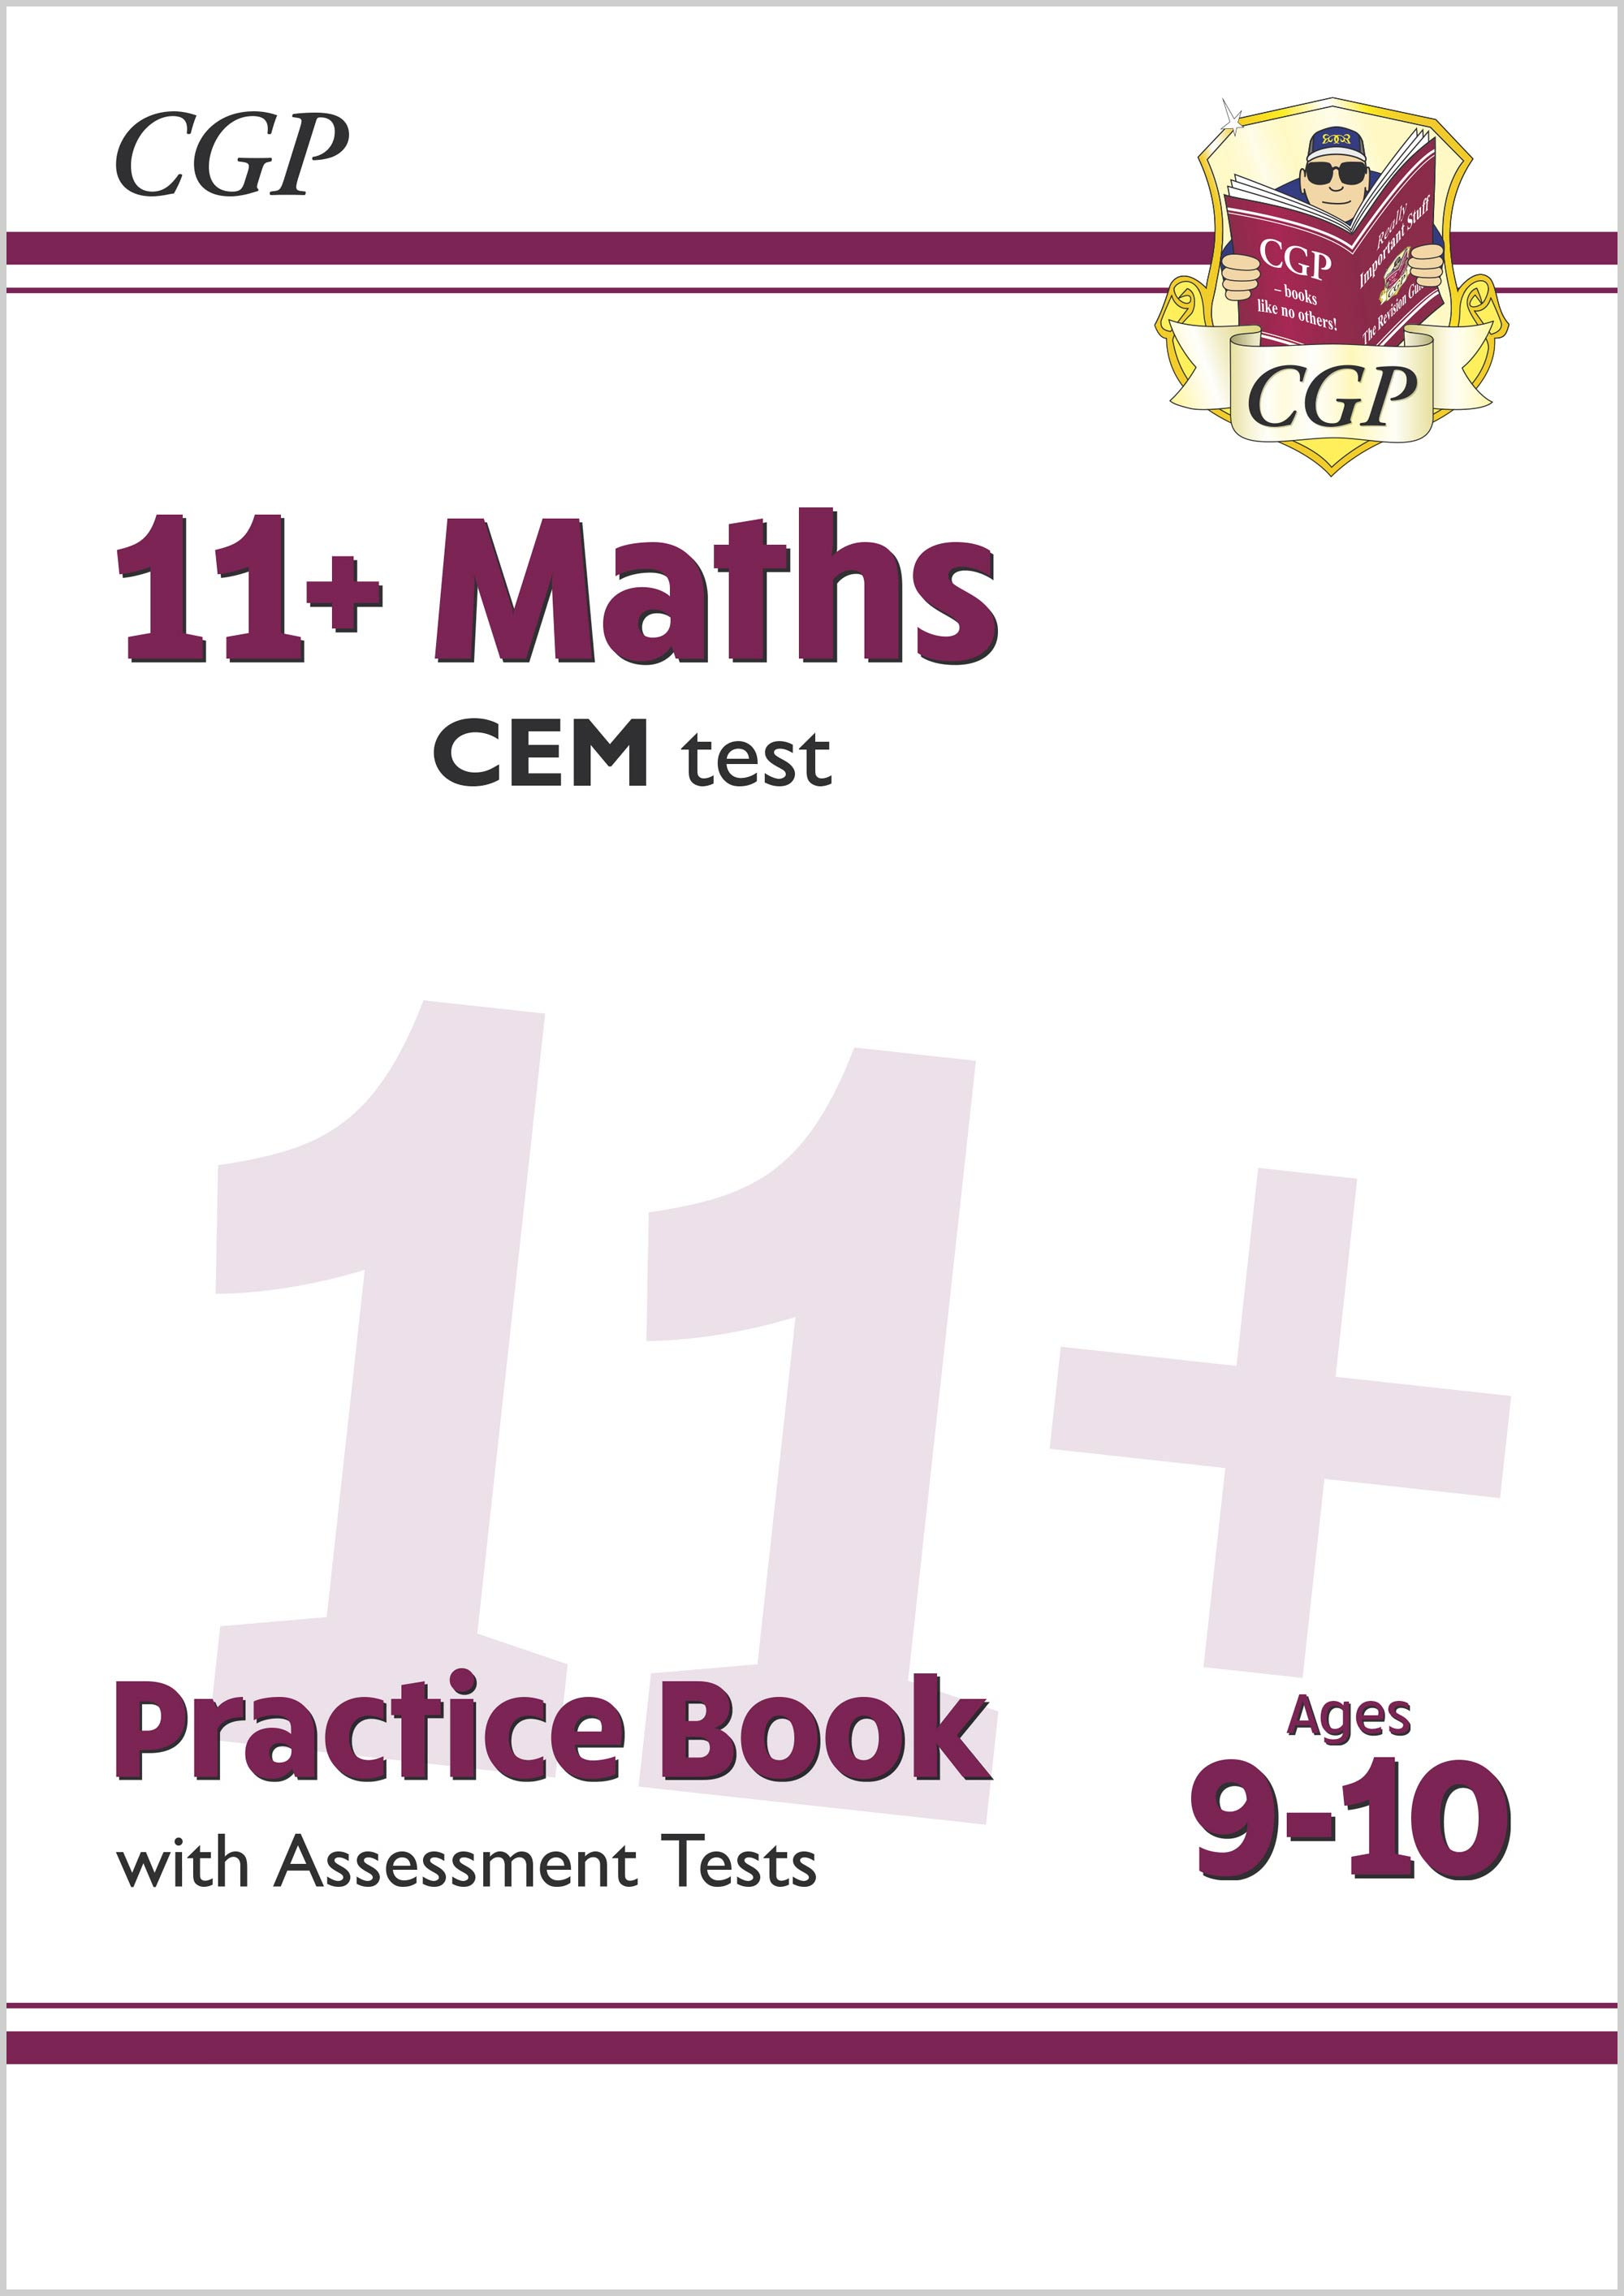 M5QDE2DK - New 11+ CEM Maths Practice Book & Assessment Tests - Ages 9-10 (with Online Edition)